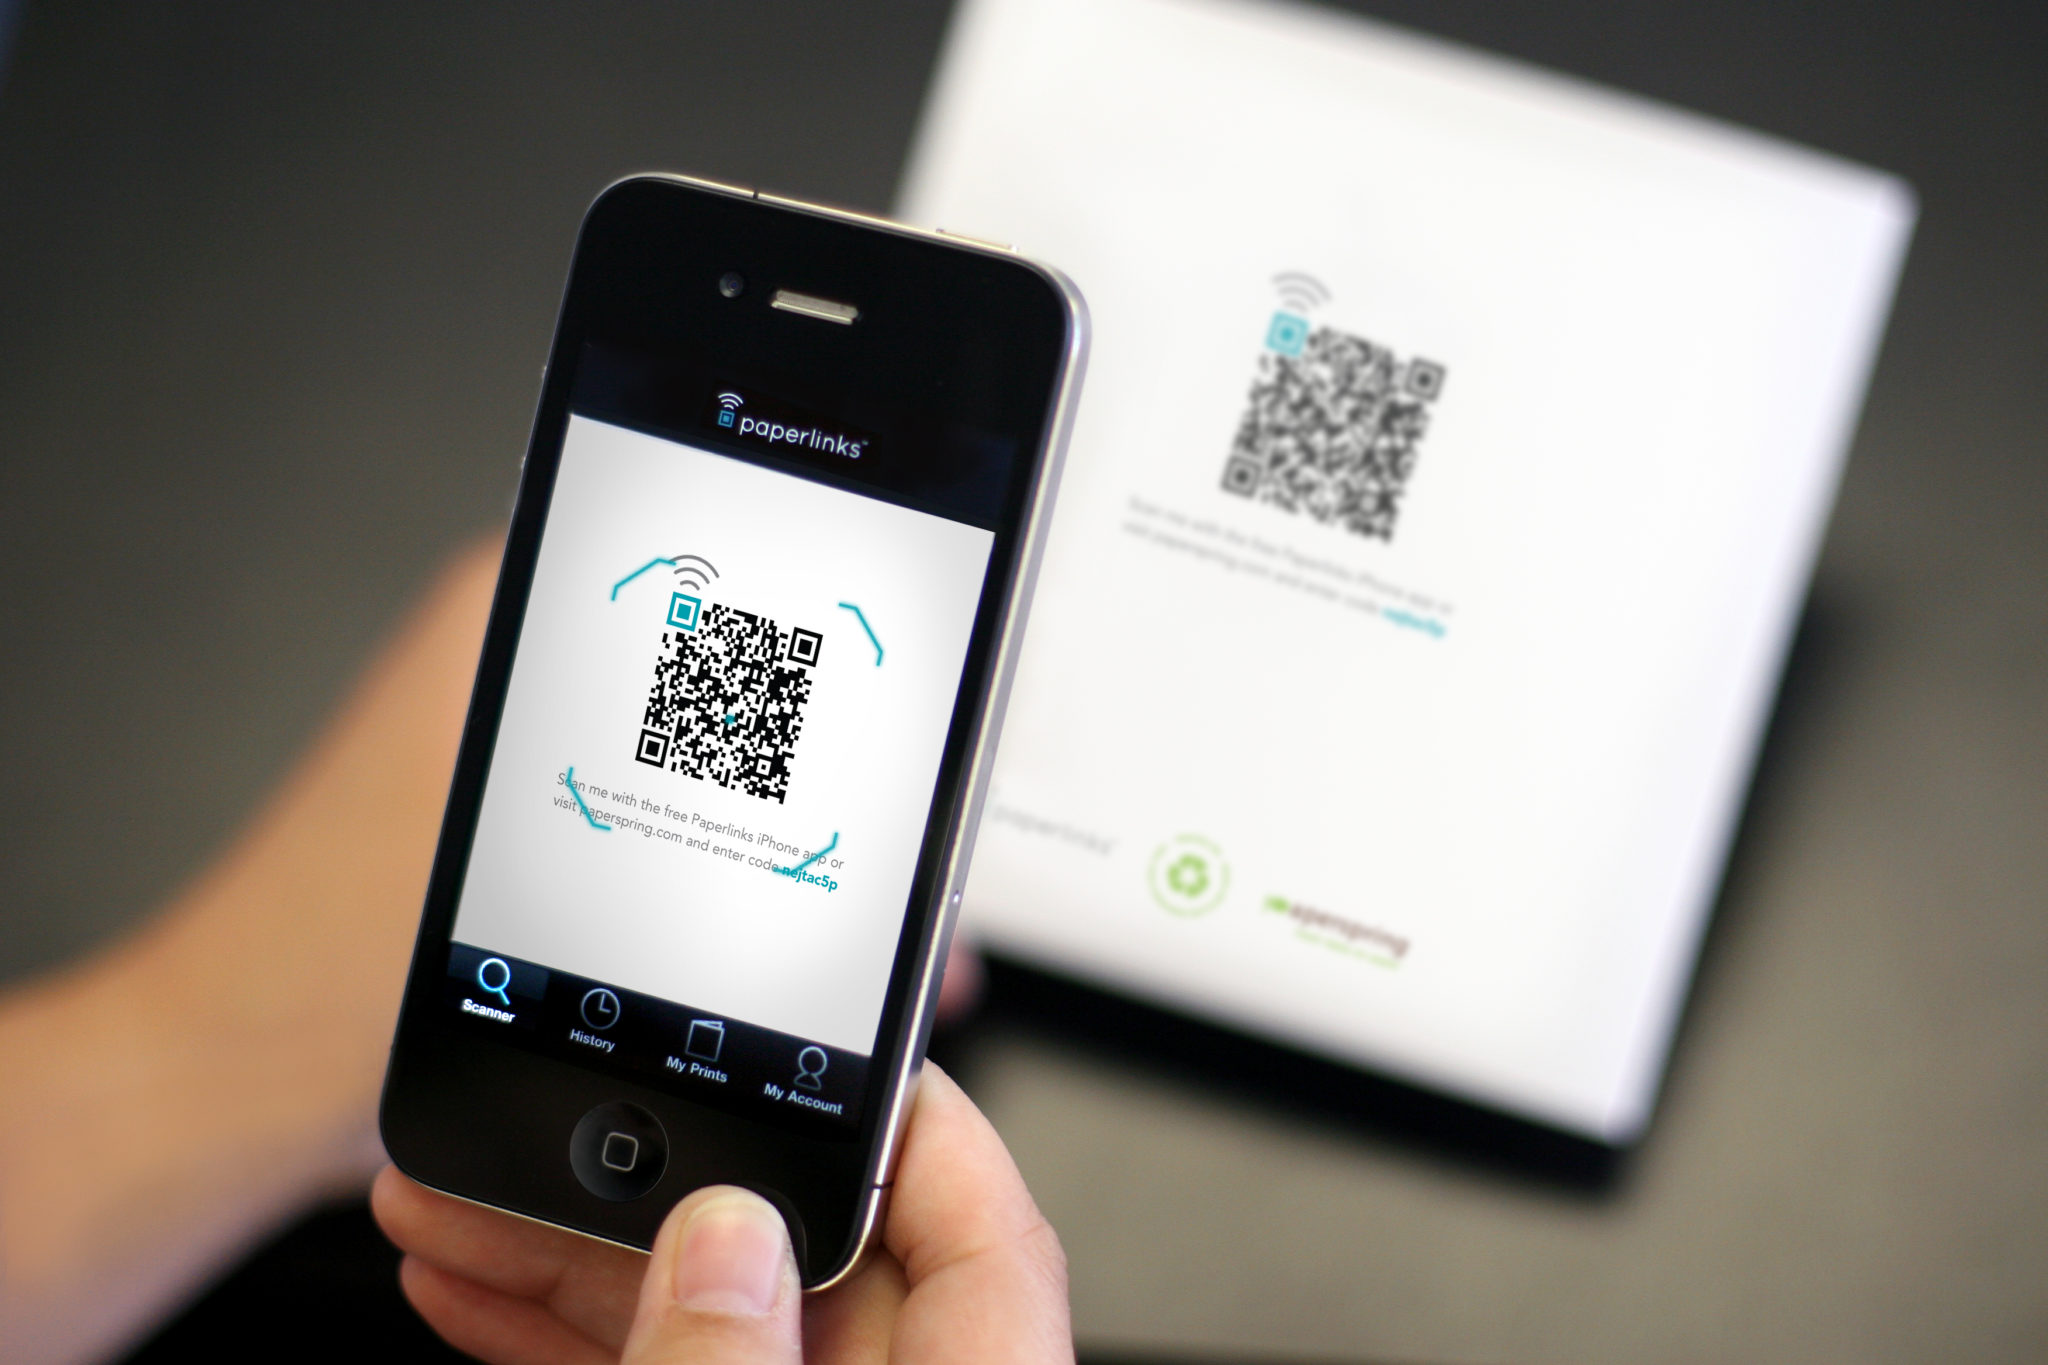 Top 5 reasons why QR codes still relevant in 2017